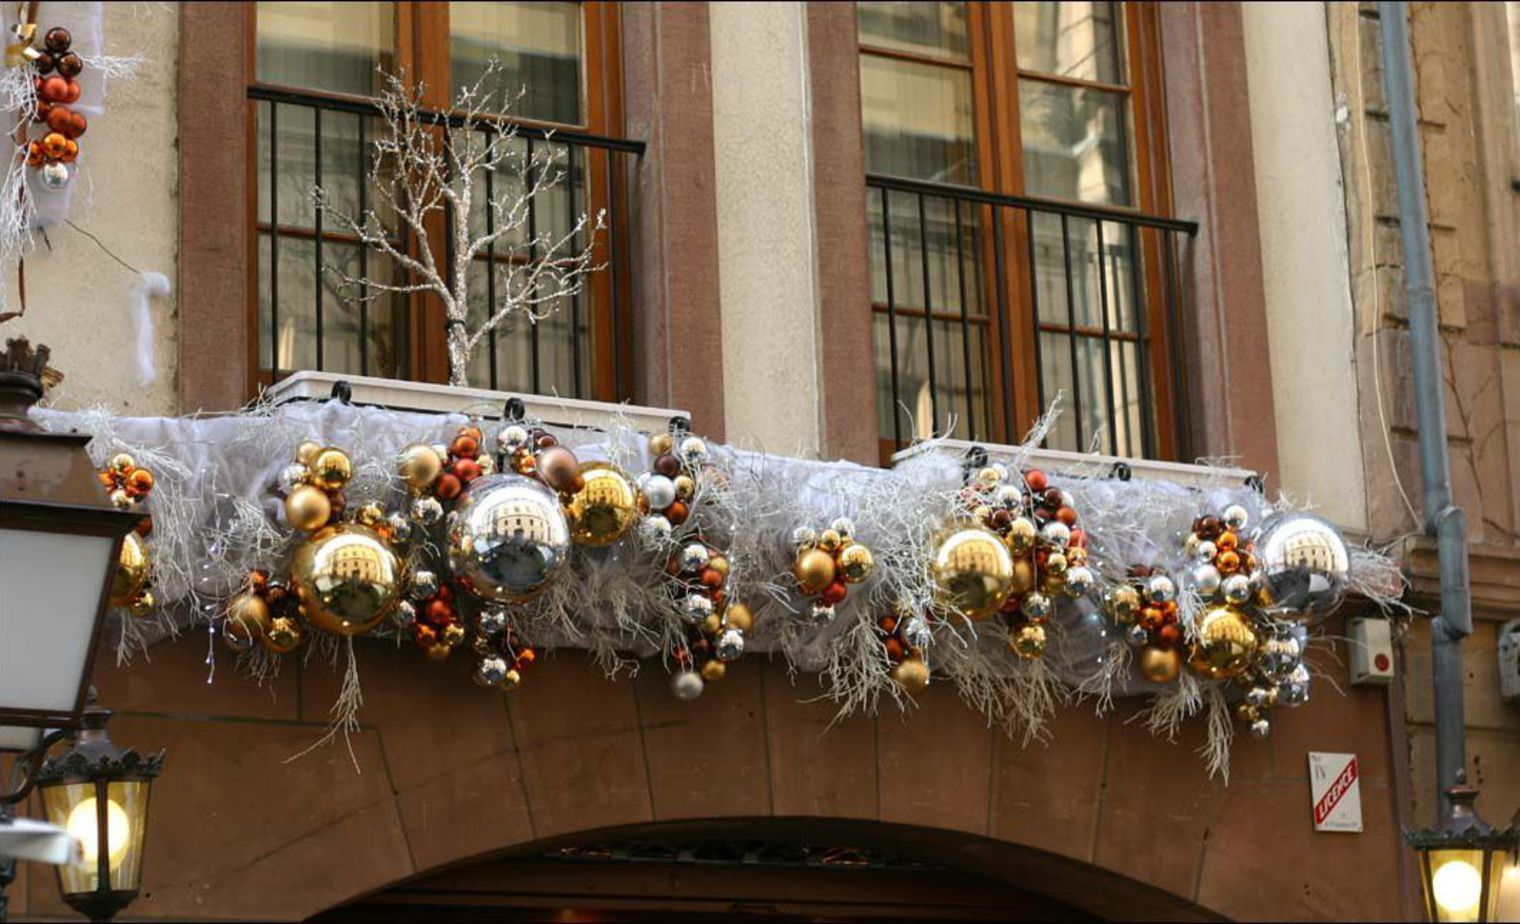 D coration noel exterieur balcon exemples d 39 am nagements for Idee decoration noel exterieur